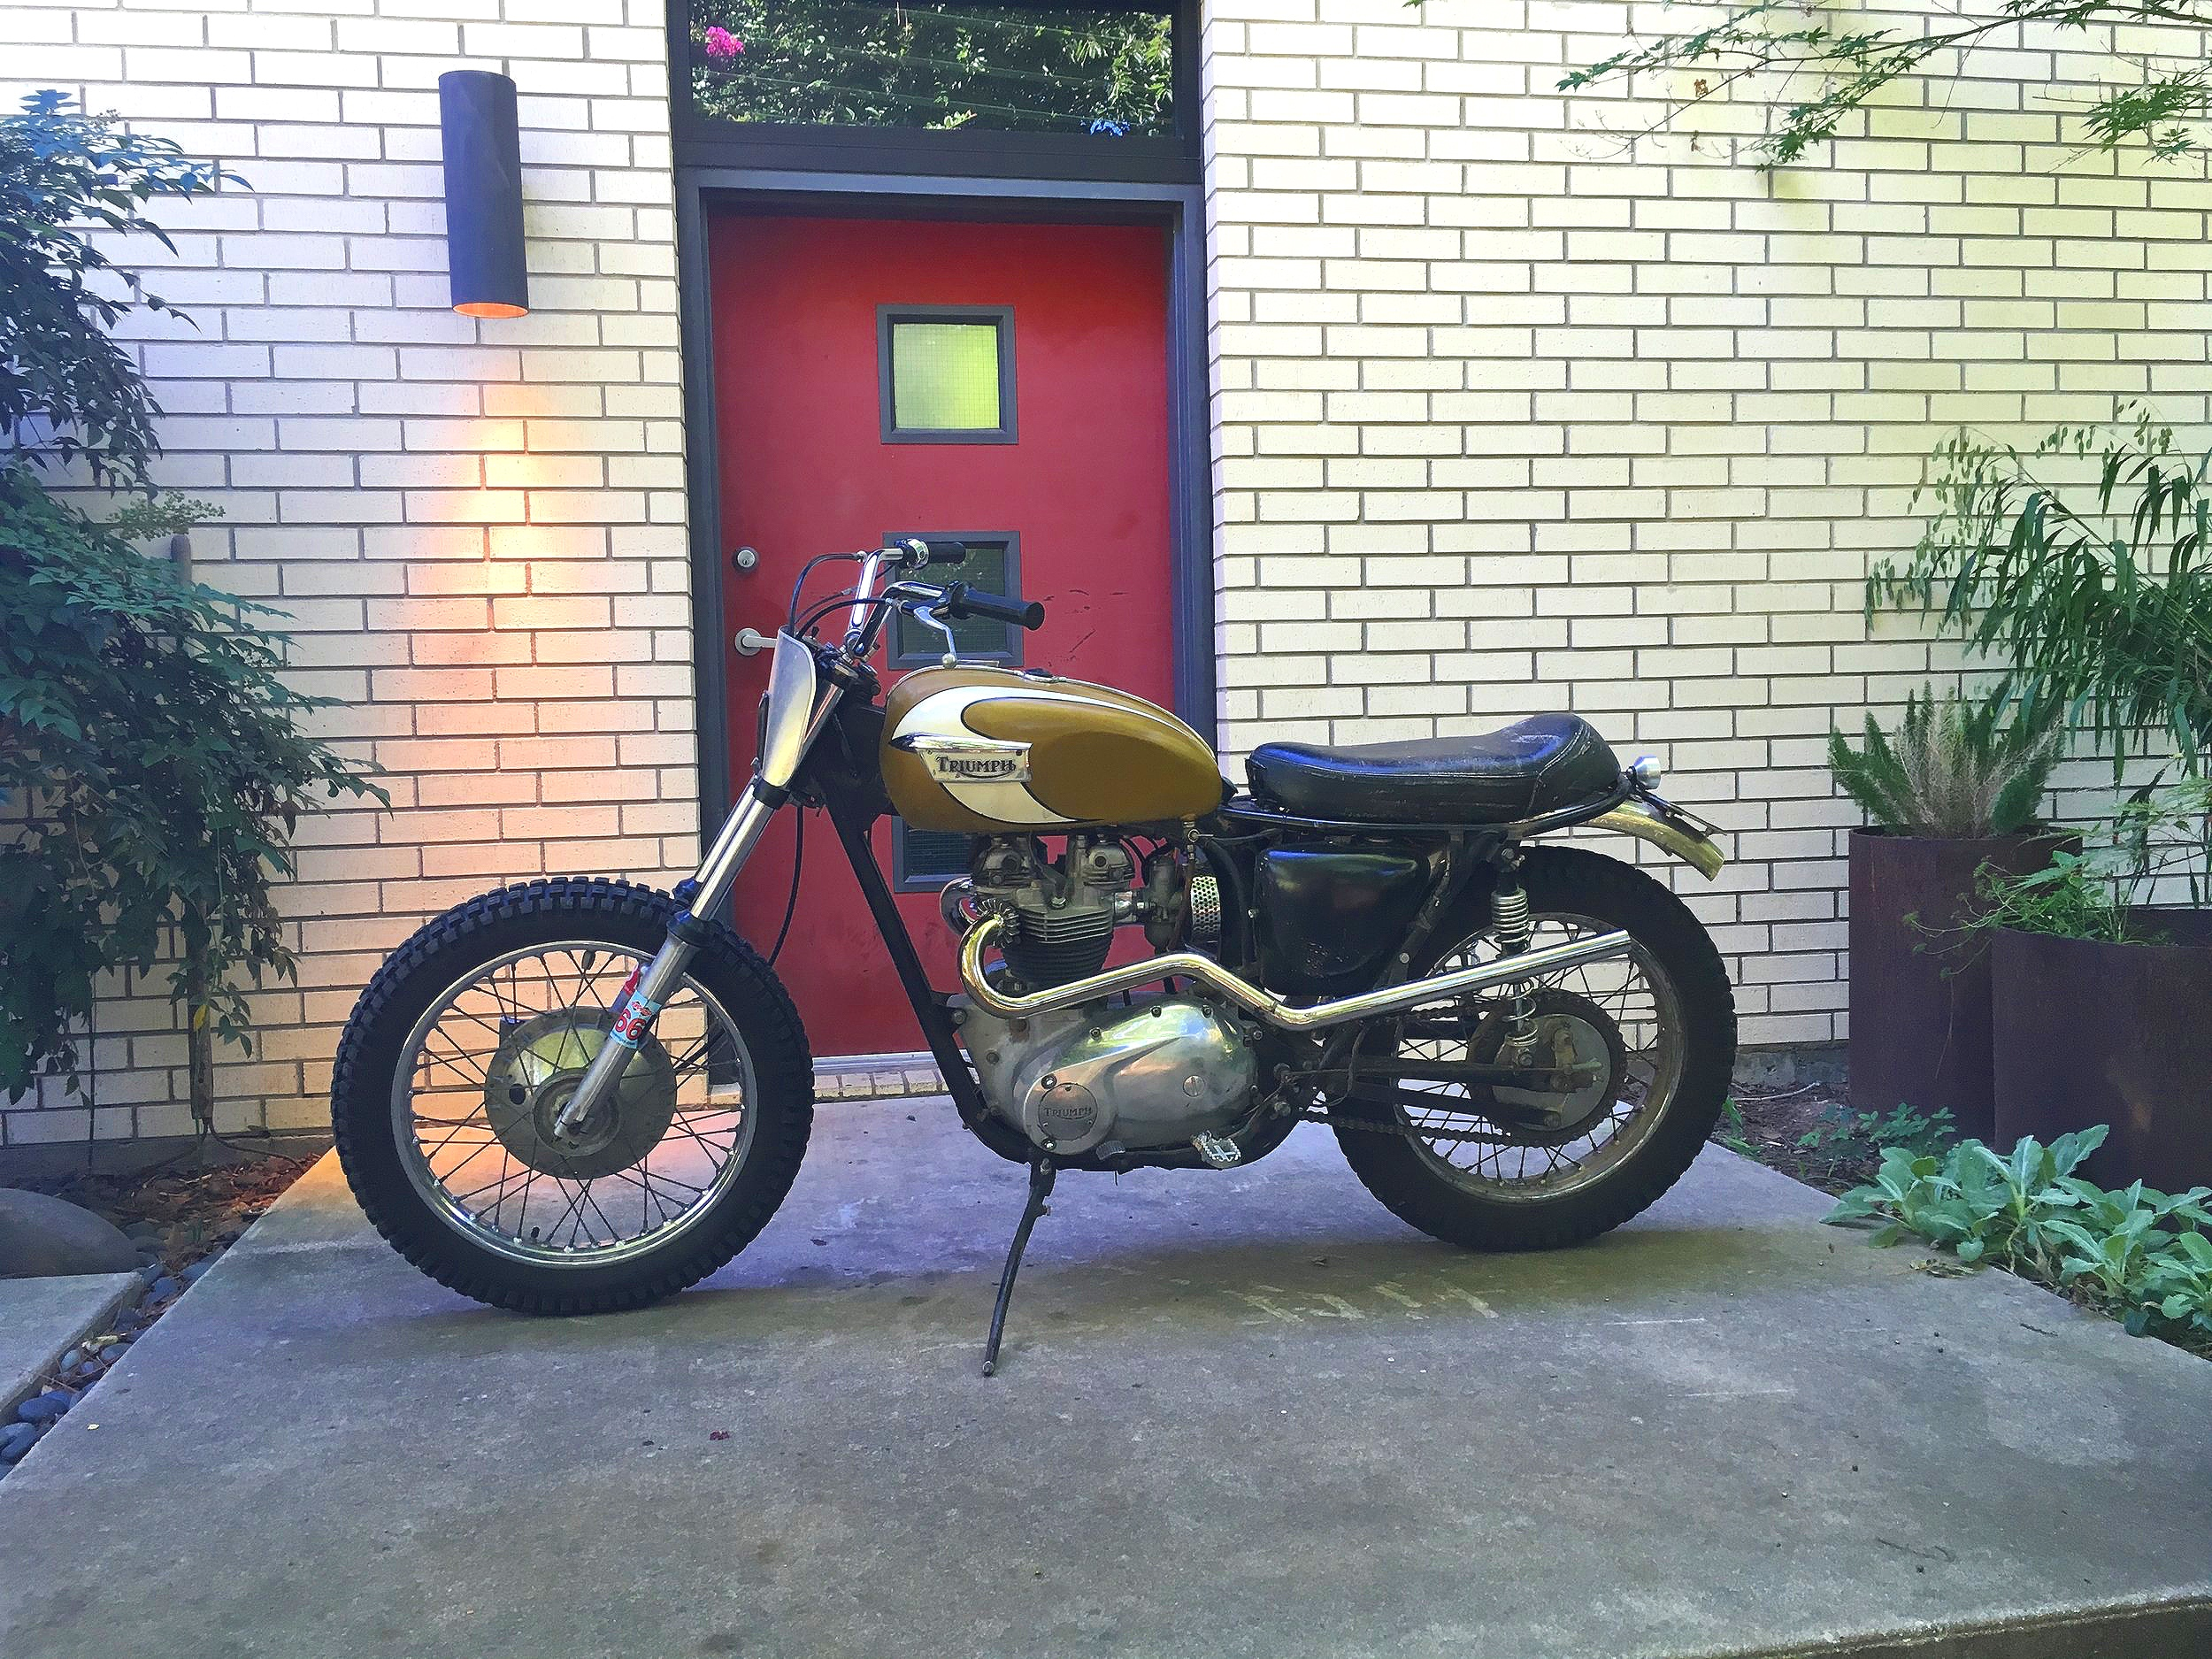 "Jason Lee's 1971 Triumph TR6C desert sled, ""Goldie""came to the shop with no spark. A rapid battery discharge indicated there was a parasitic drain. The tail light would come on randomly when the bike was parked, and no amount of adjustment to the brake switches seemed to make any difference."